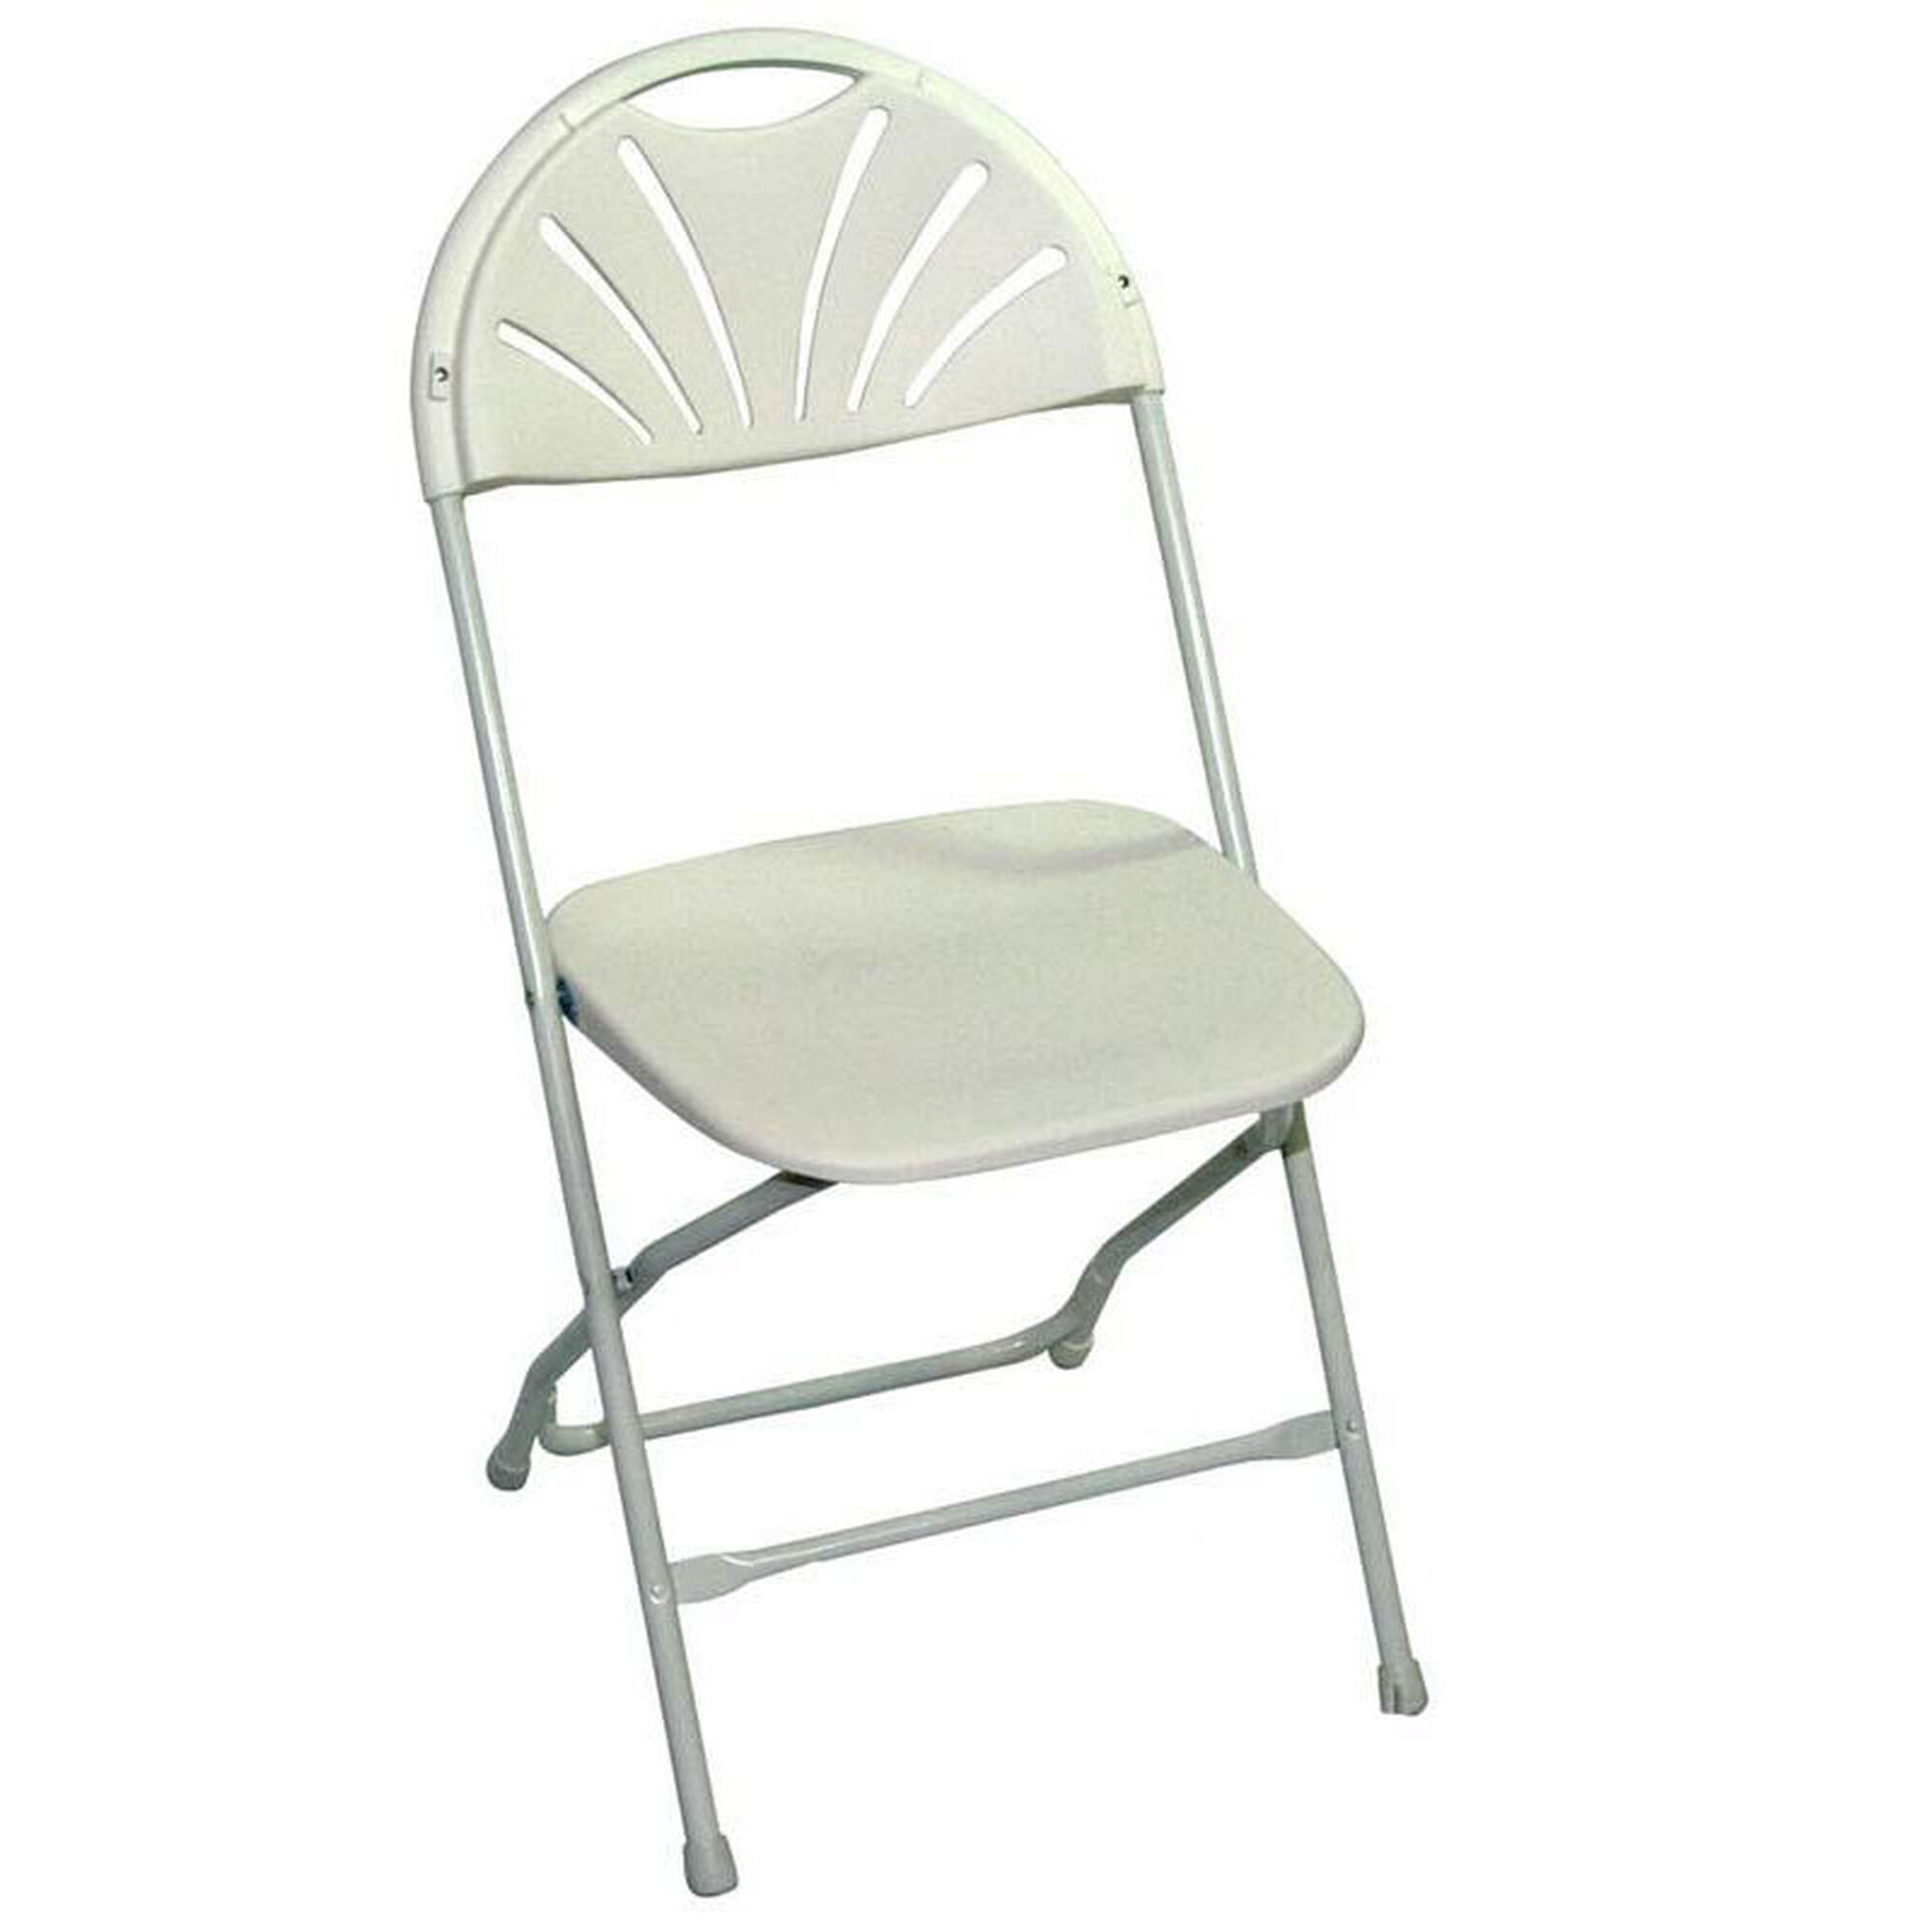 Awesome Champ Series 35H Fanback Powder Coated Steel And Resin Folding Chair Bright White Creativecarmelina Interior Chair Design Creativecarmelinacom